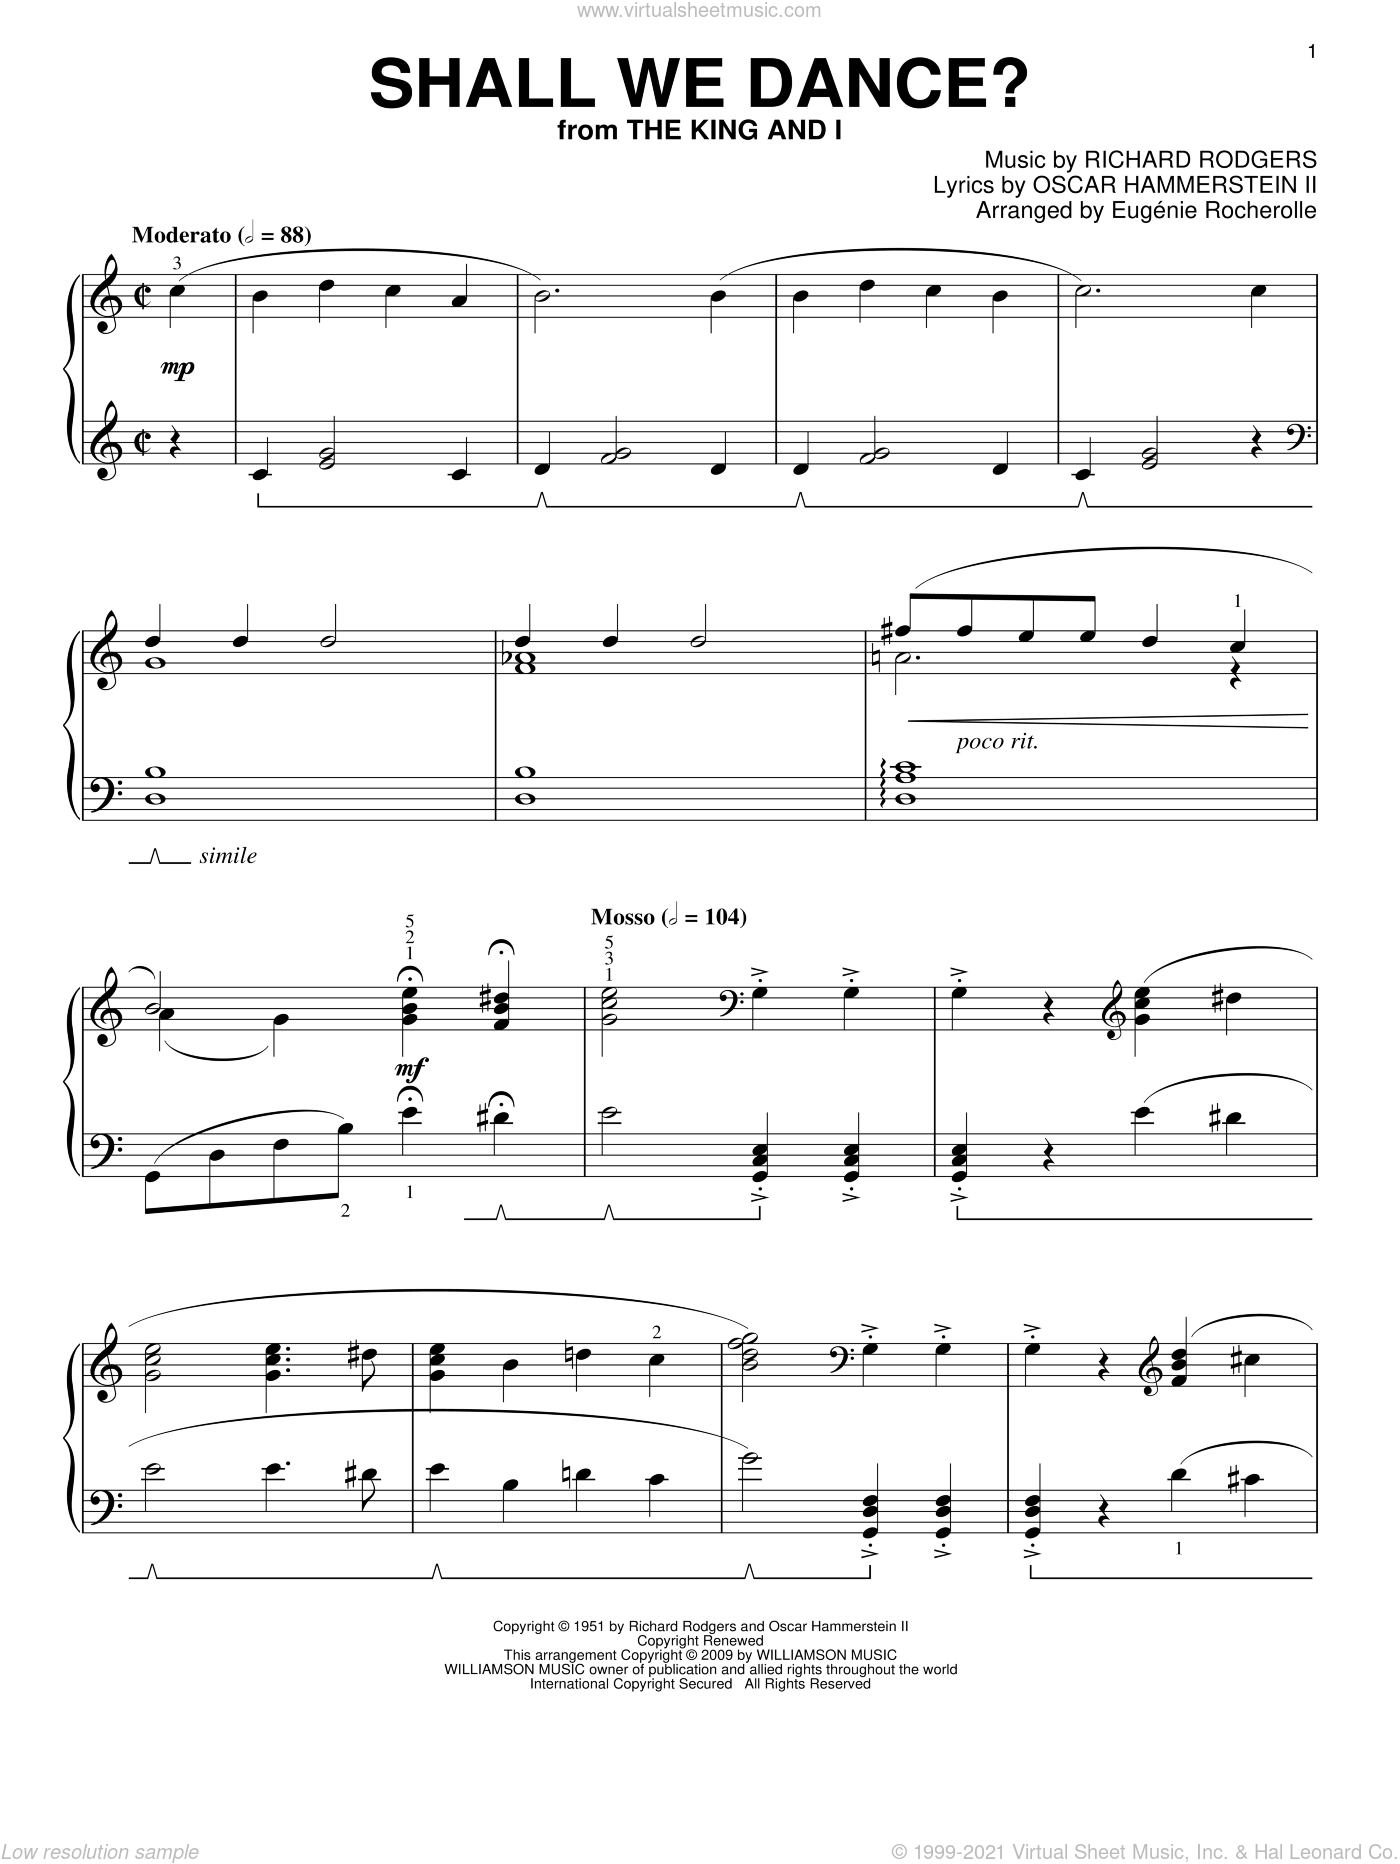 Shall We Dance? sheet music for piano solo by Richard Rodgers